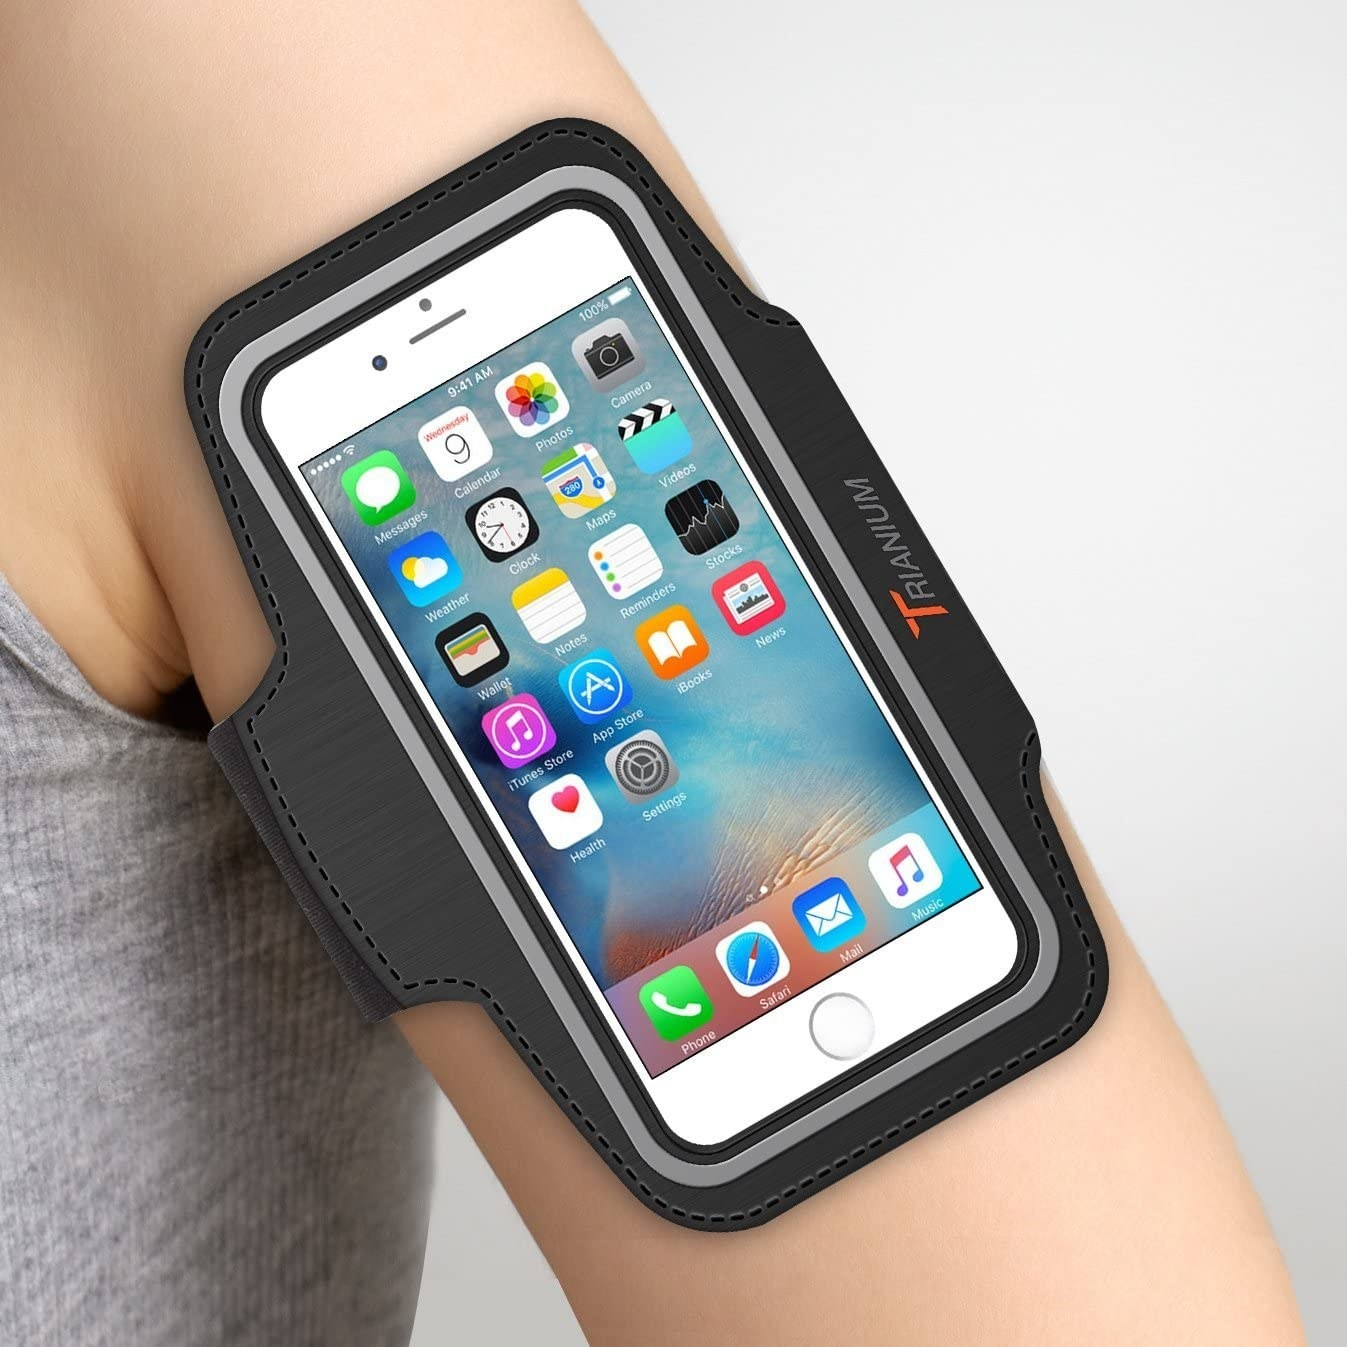 Someone's arm with an iPhone in the armband case.